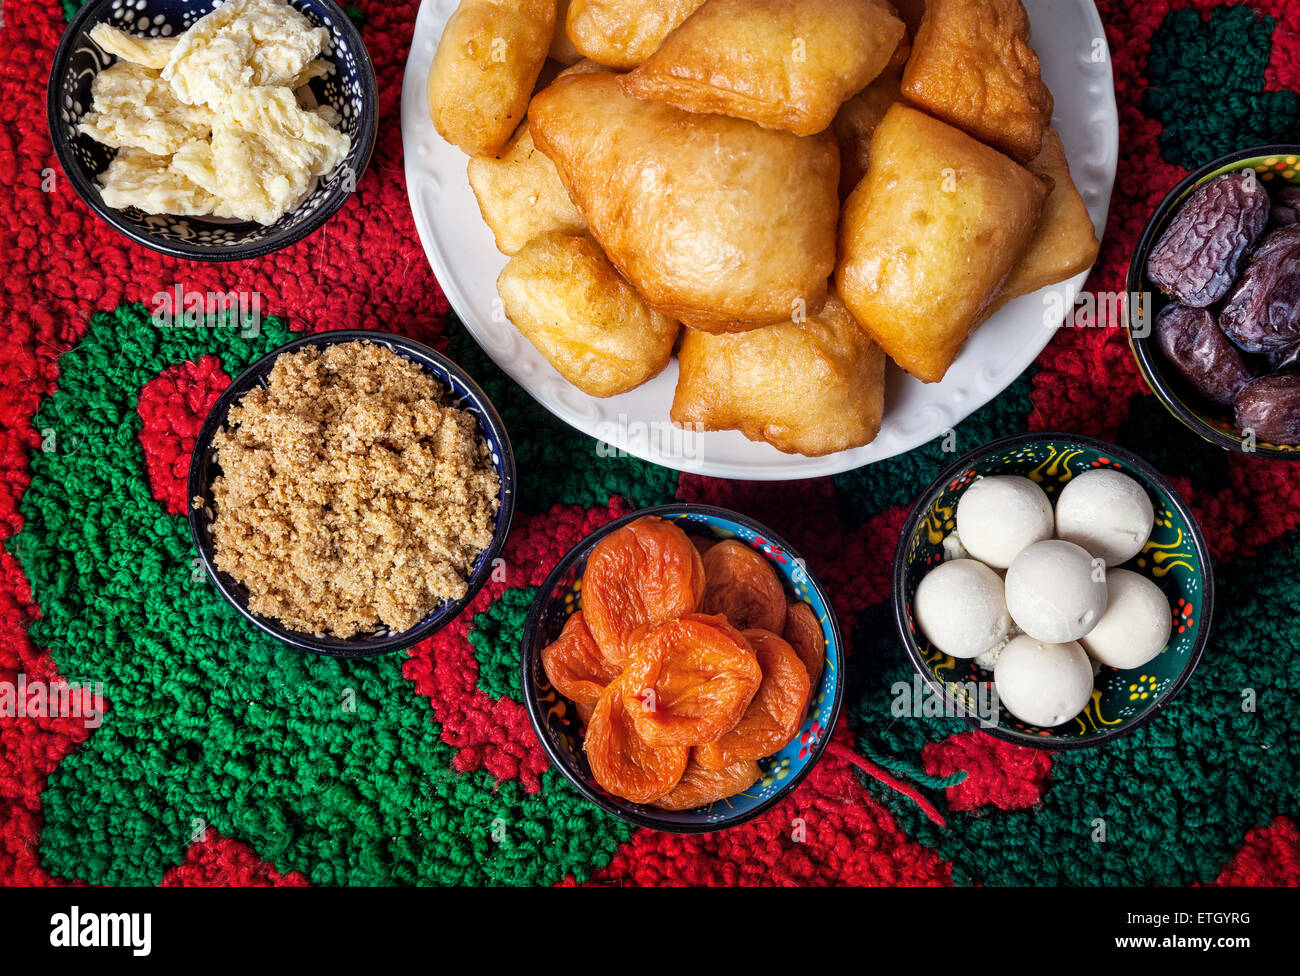 Kazakh national dishes on the carpet with ornament in restaurant - Stock Image